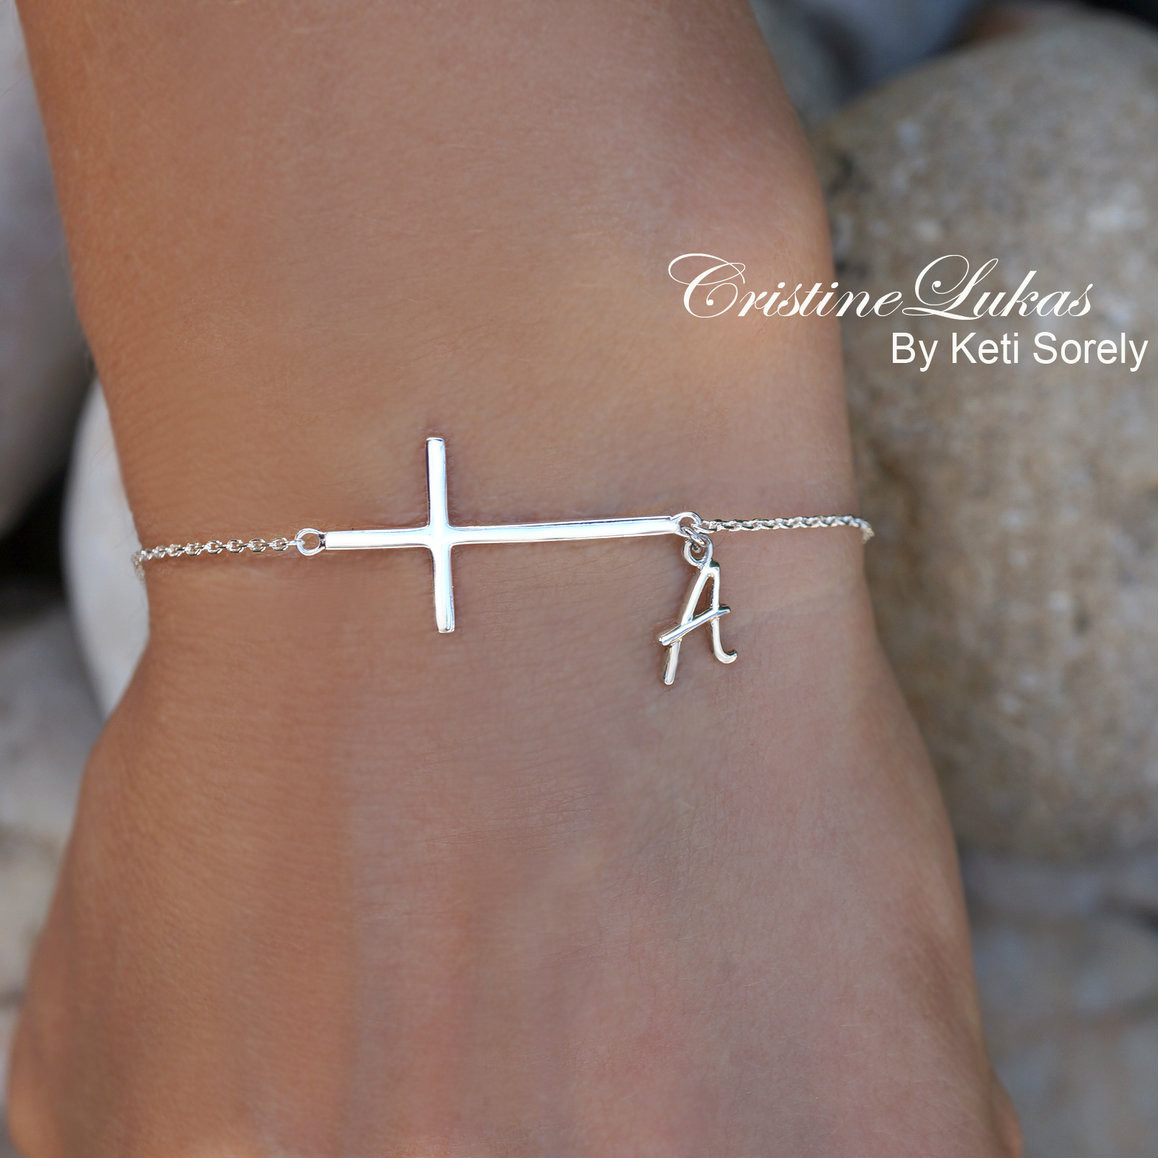 celebrity style sideways cross bracelet with your personalized initial in sterling silver or